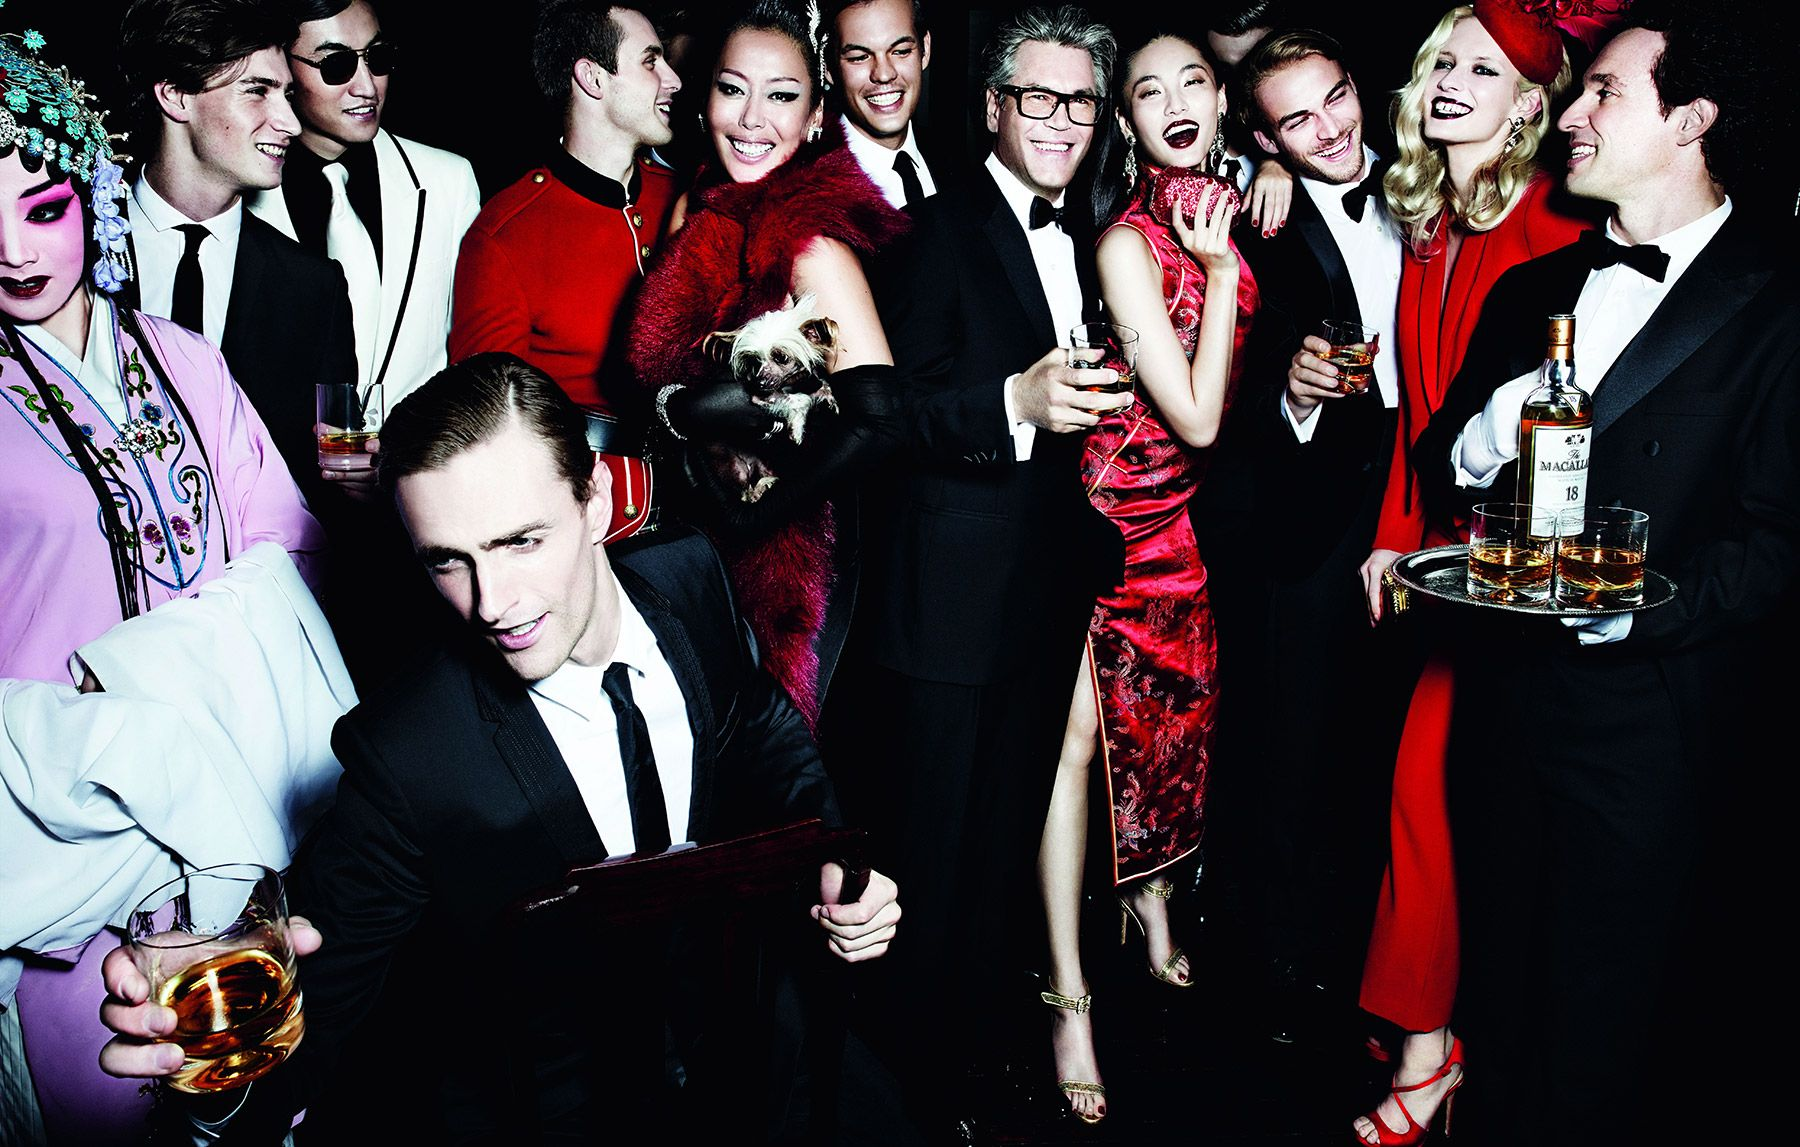 The Macallan,Masters of Photography: Mario Testino Edition